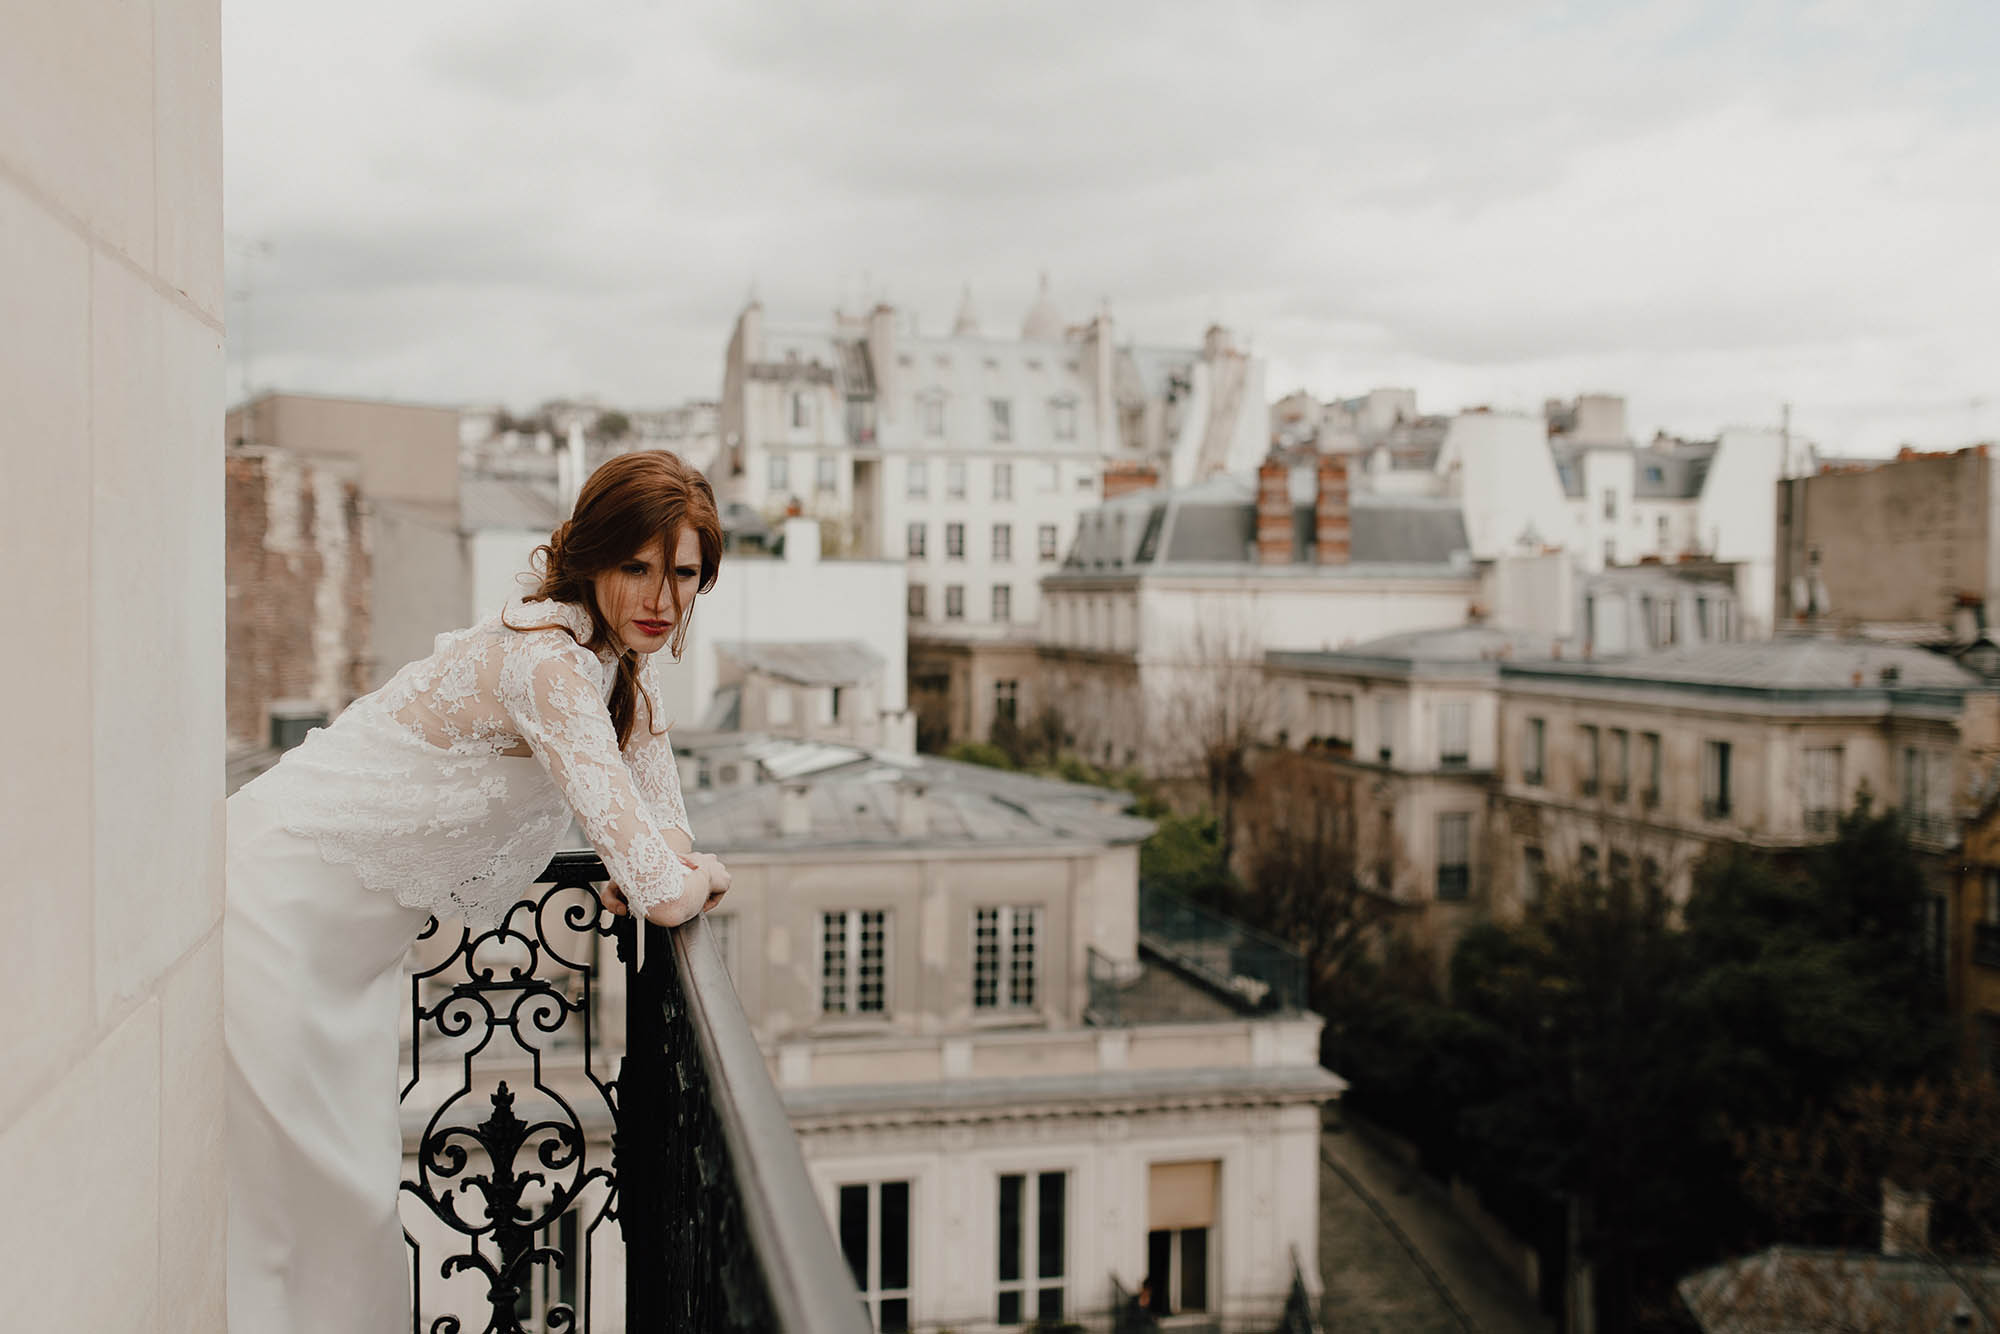 youmademydayphotography-destination-wedding-photographer-david-purves-boheme-rock-paris-web-117